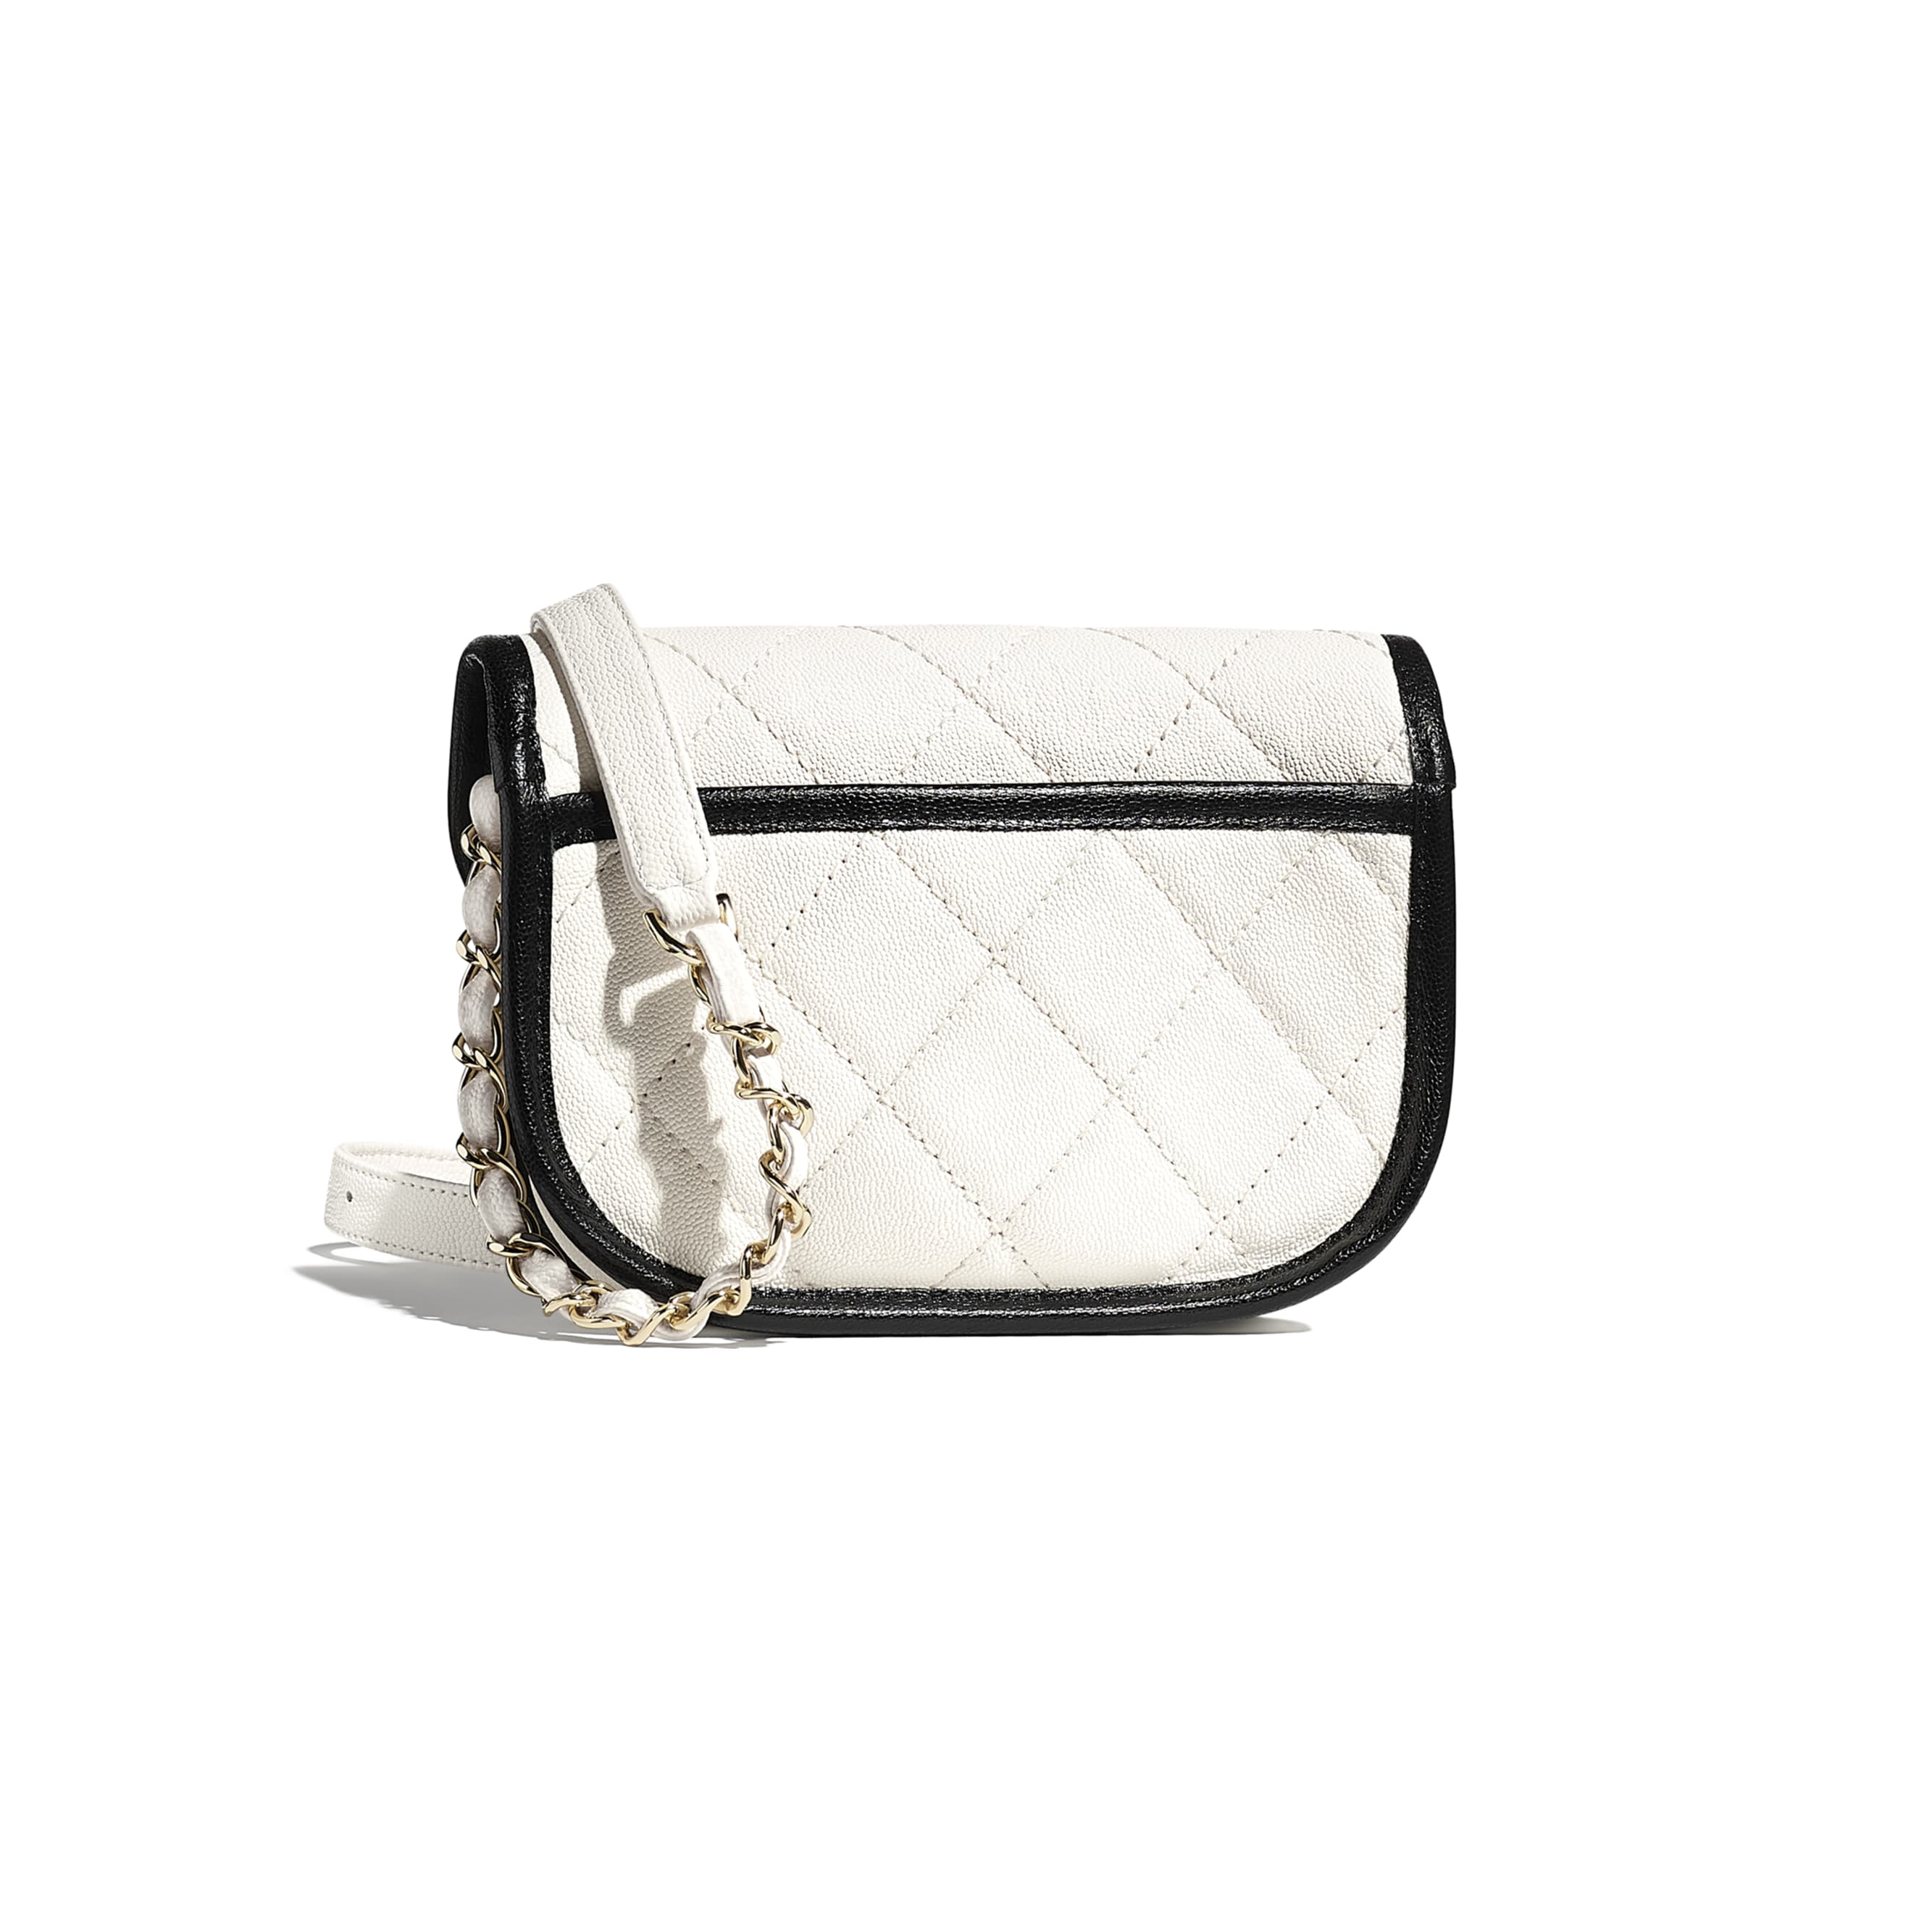 Mini Messenger Bag - White & Black - Grained Calfskin & Gold-Tone Metal - CHANEL - Alternative view - see standard sized version